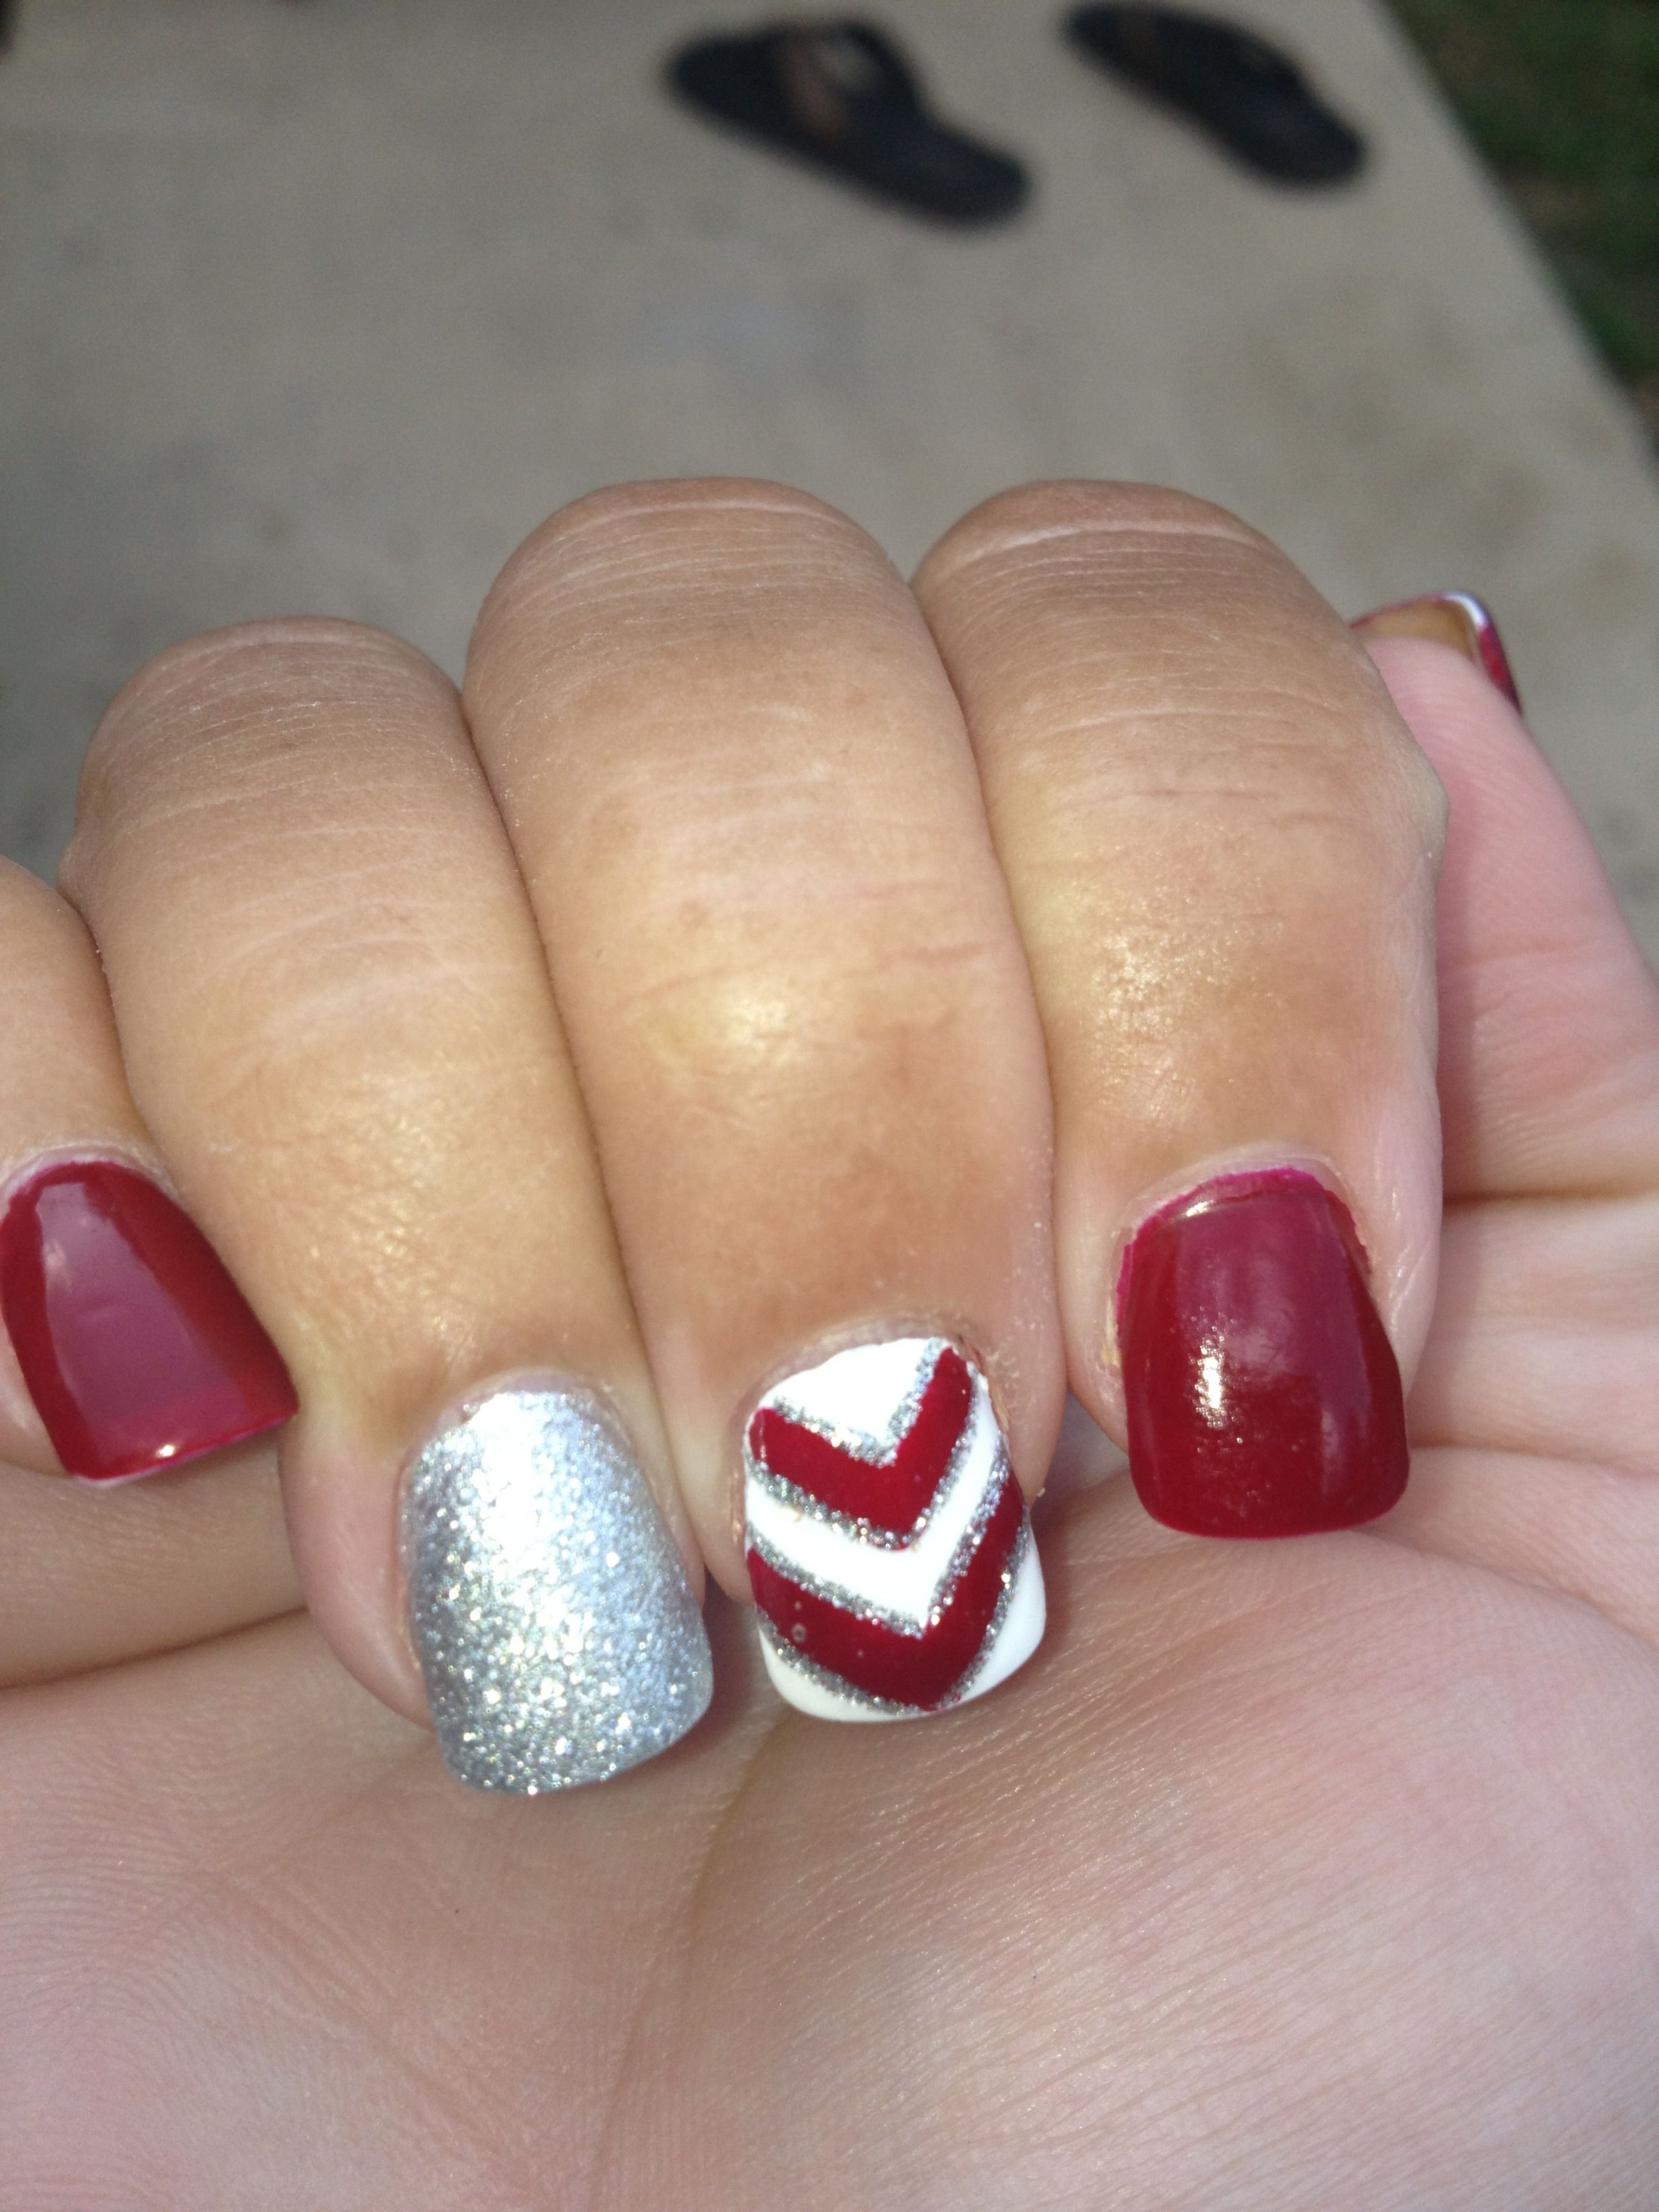 Nails done by Nikki at Fancy Nails, Fayetteville, Ar. | Nail envy ...